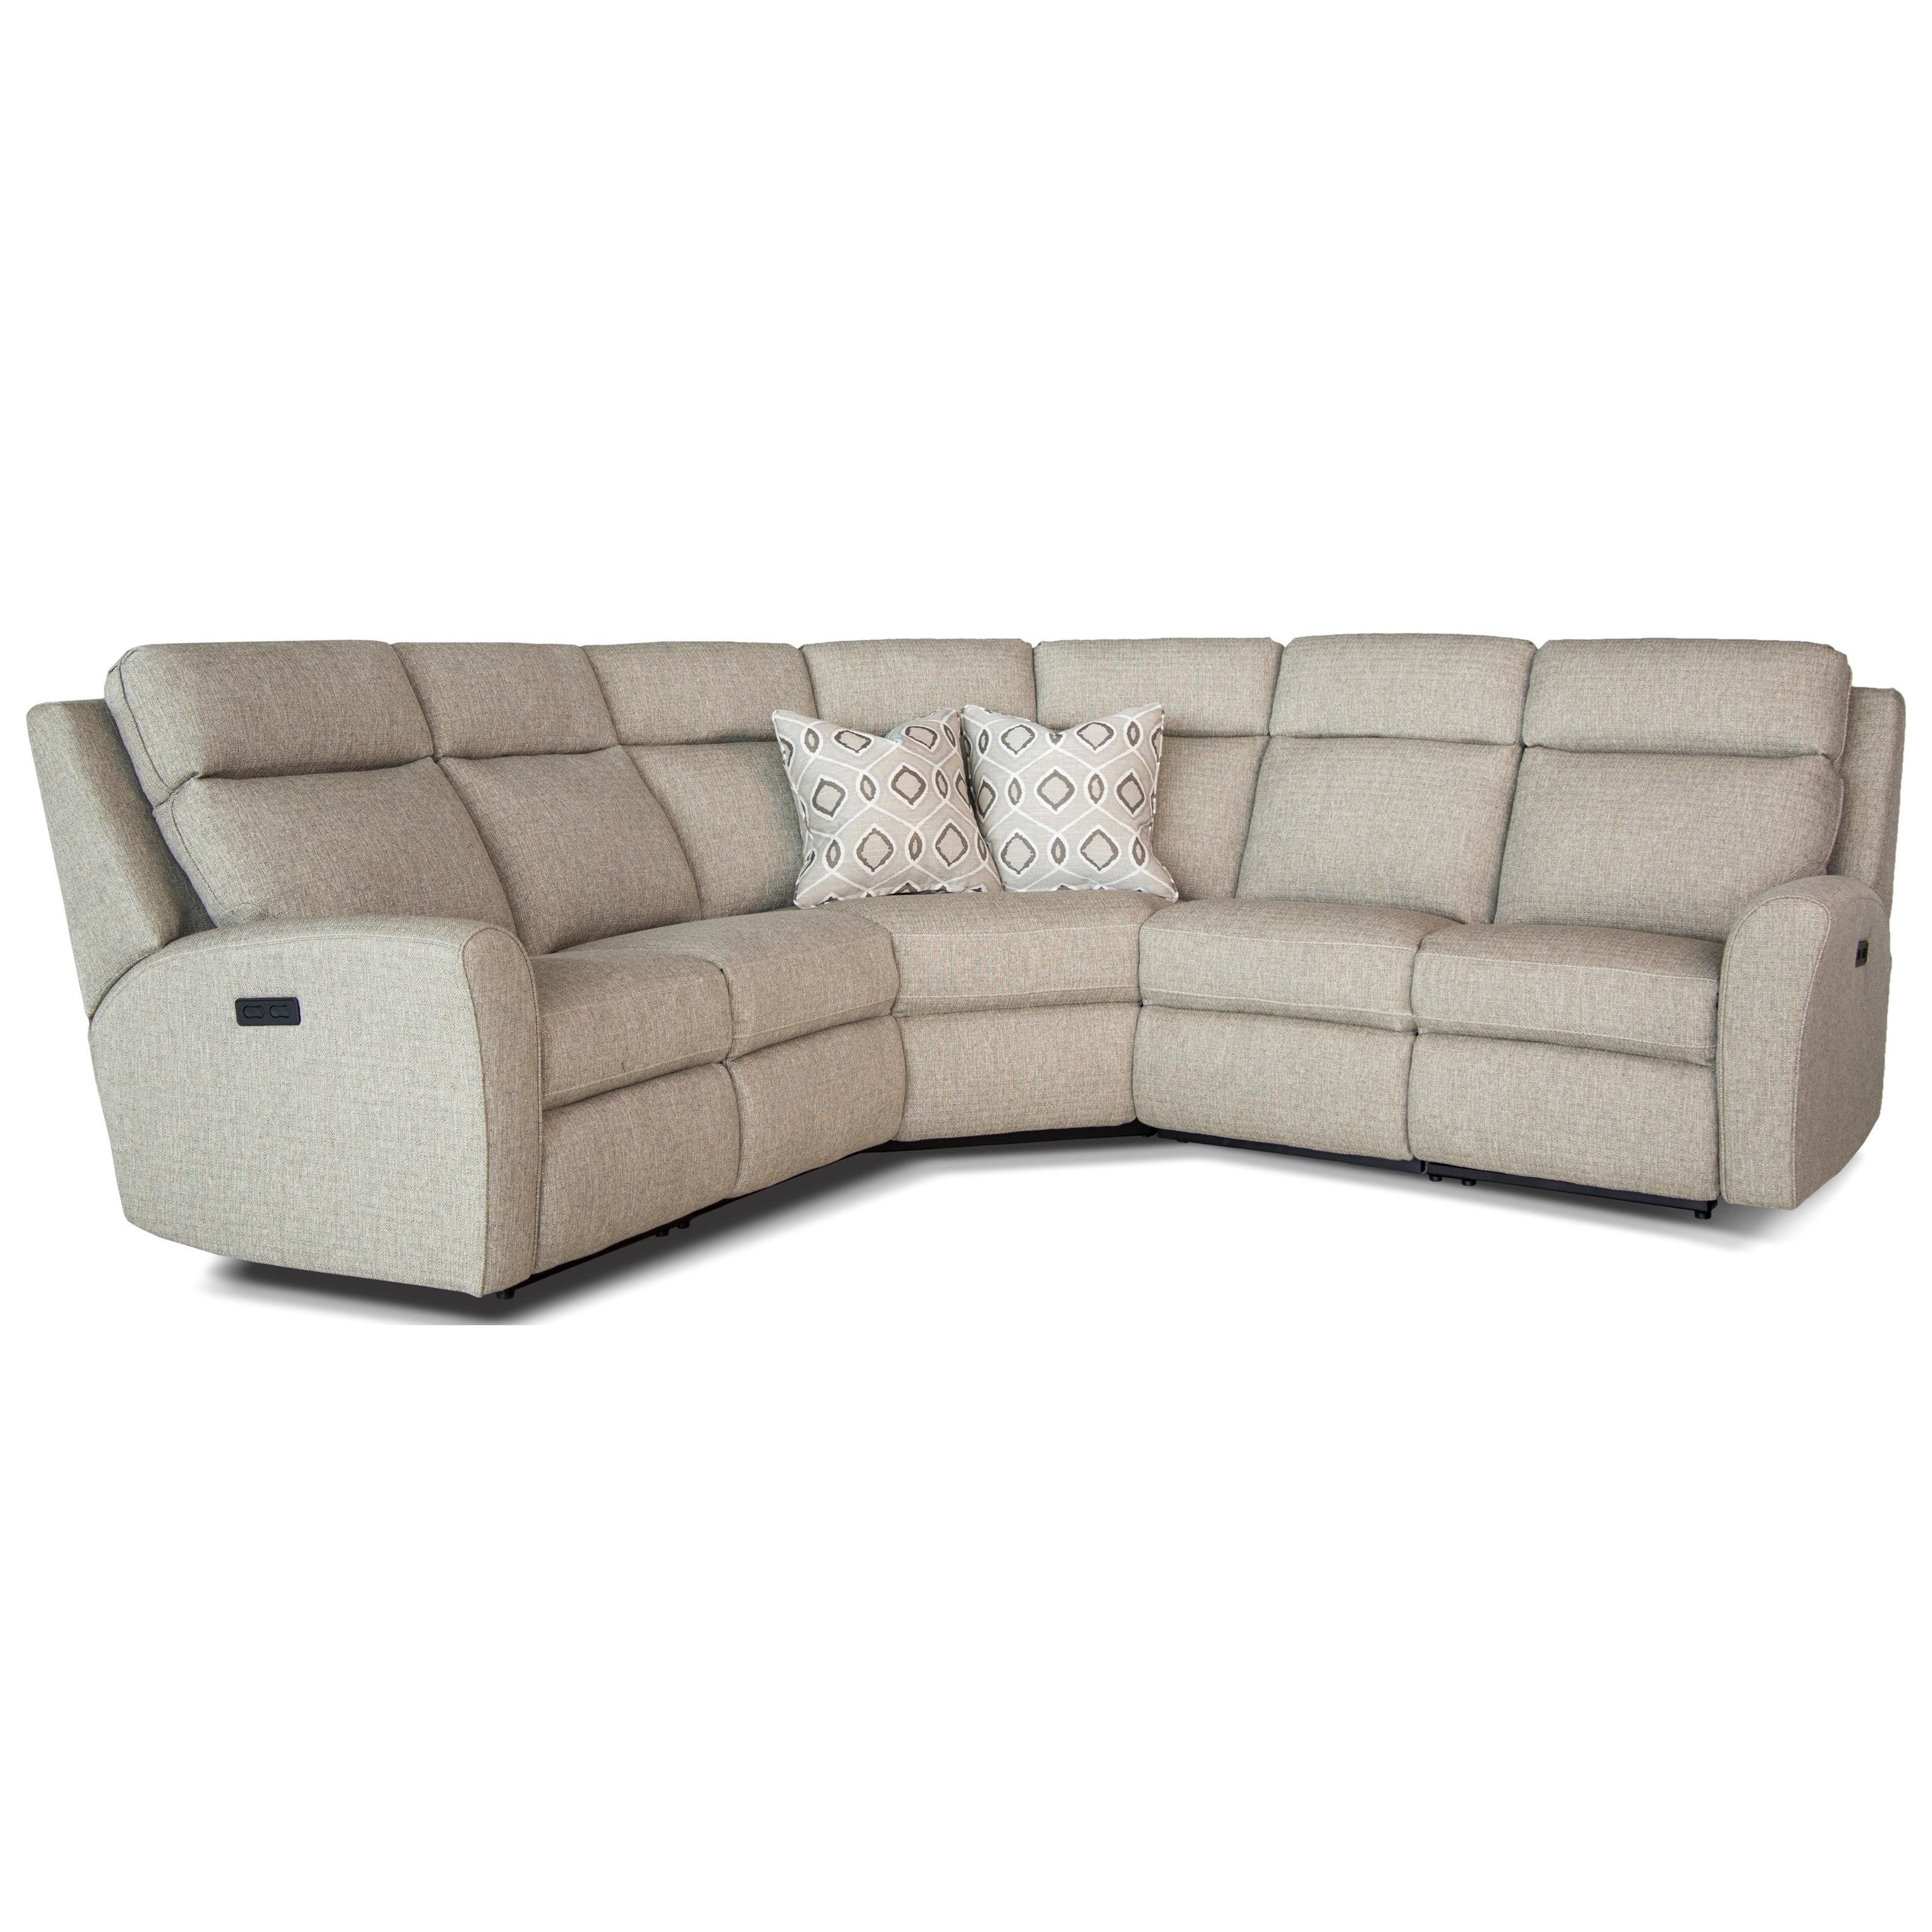 418 Motorized Reclining Sectional Sofa by Smith Brothers at Coconis Furniture & Mattress 1st